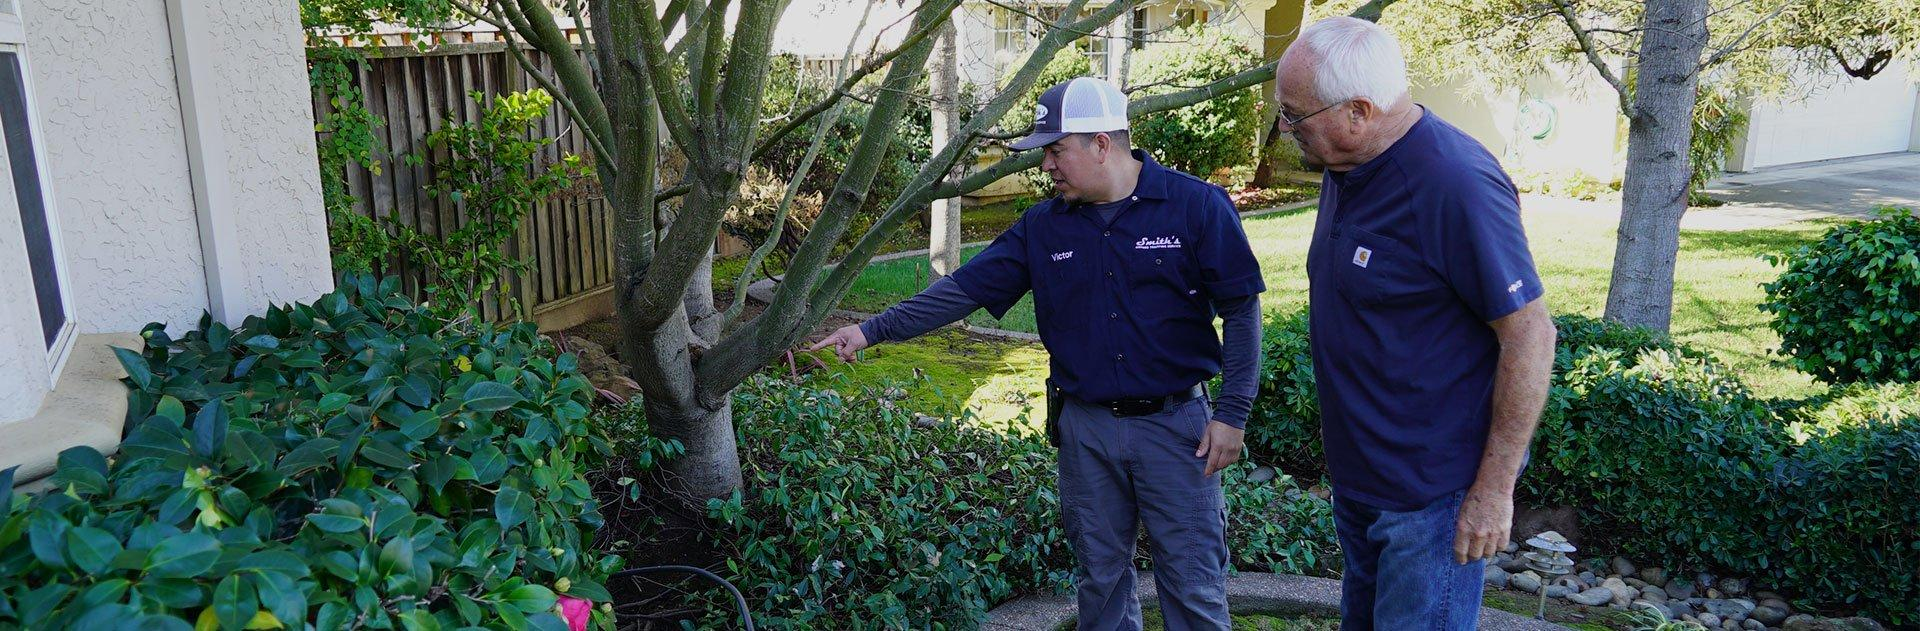 smith's pest management technician with client